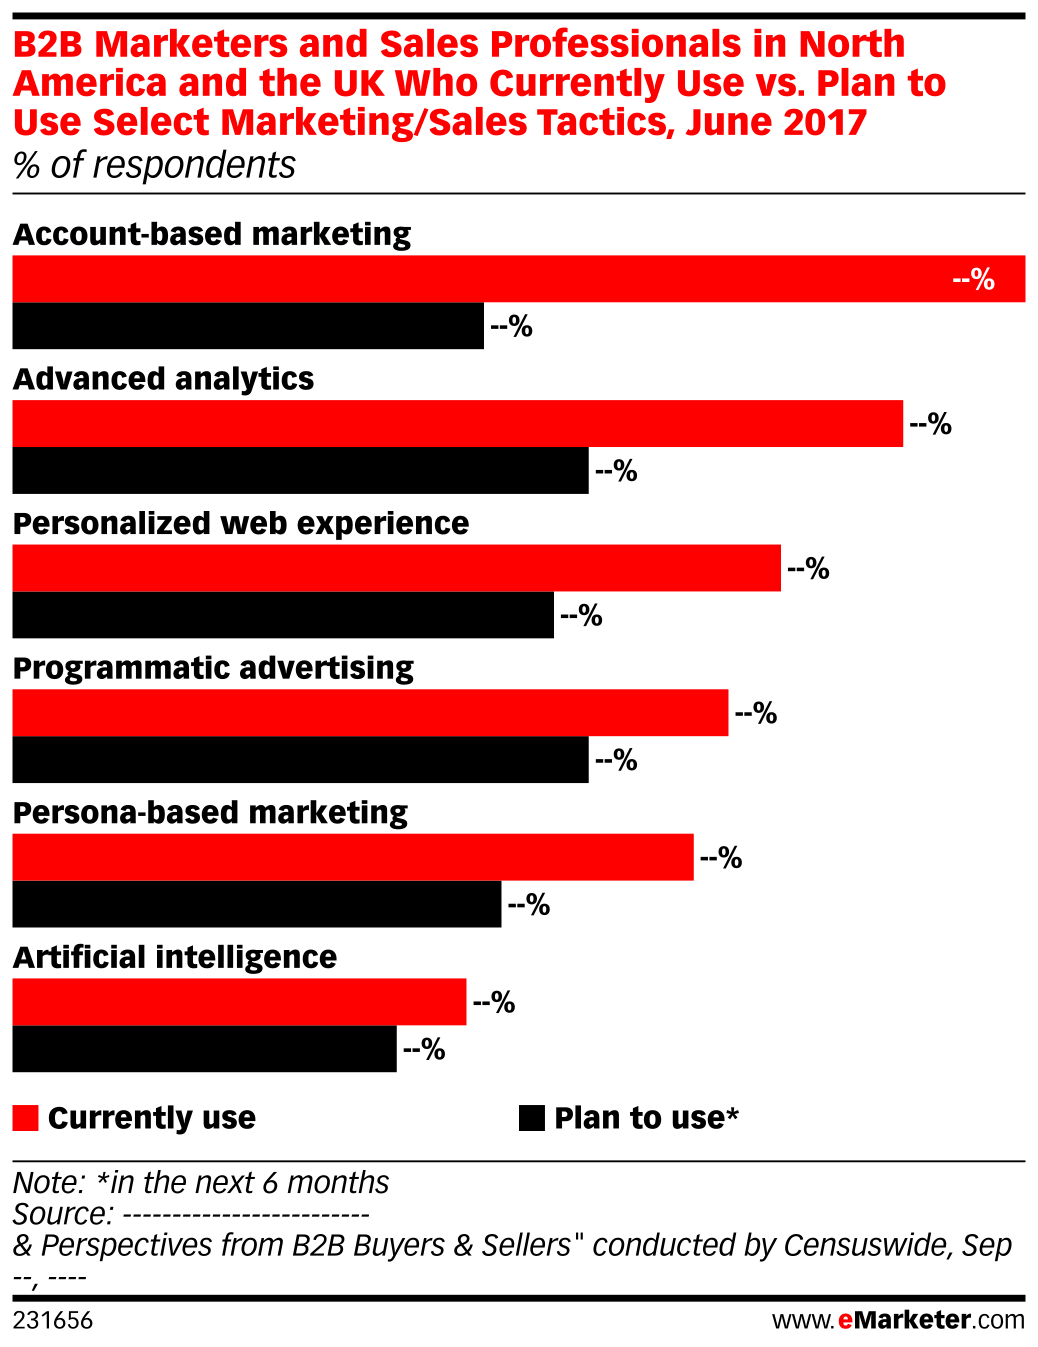 B2B Marketers and Sales Professionals in North America and the UK Who Currently Use vs. Plan to Use Select Marketing/Sales Tactics, June 2017 (% of respondents)